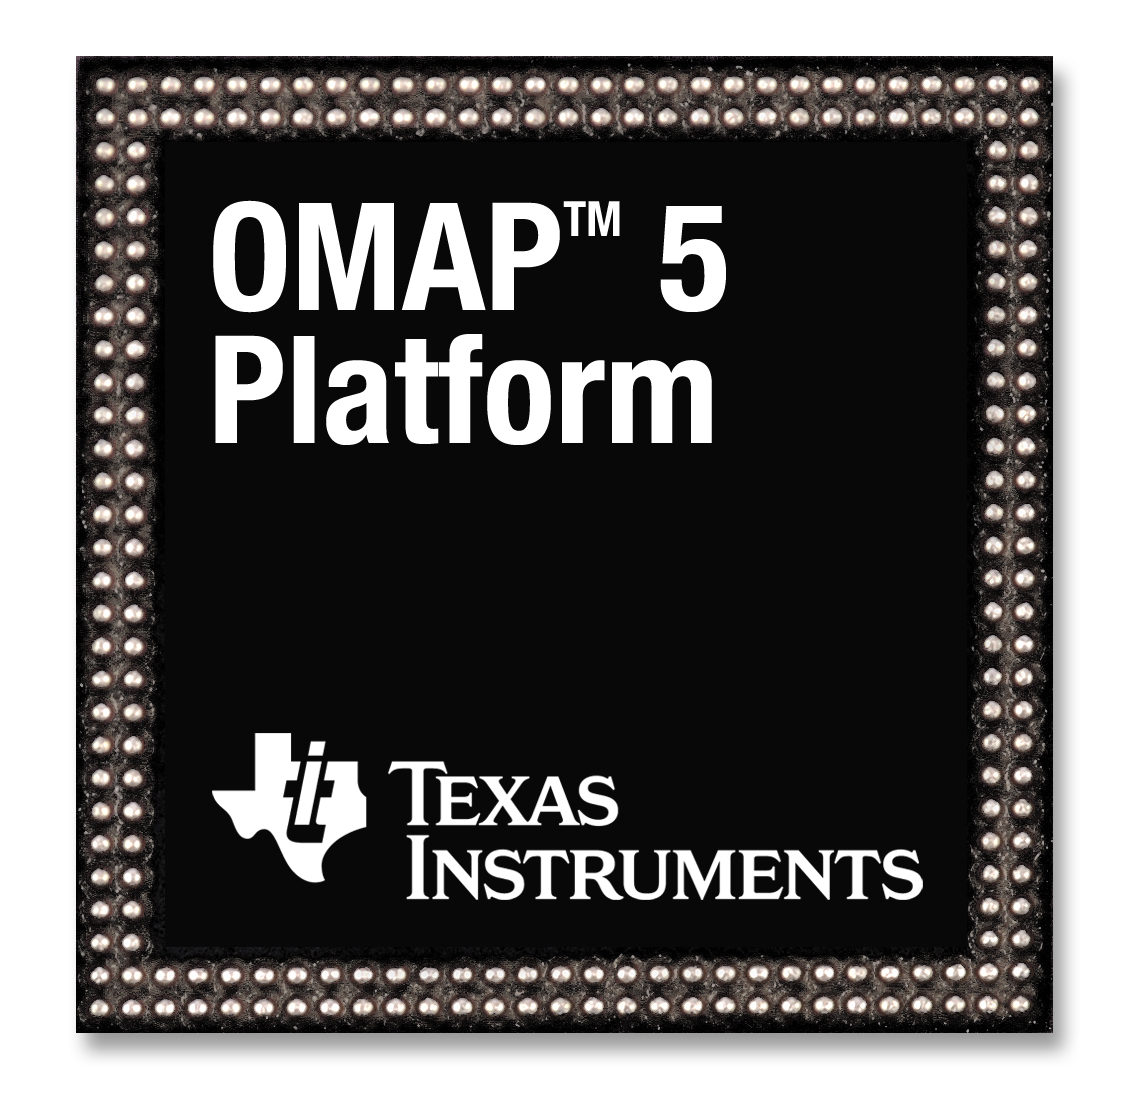 TI Debuts 28-nm OMAP 5 Process...